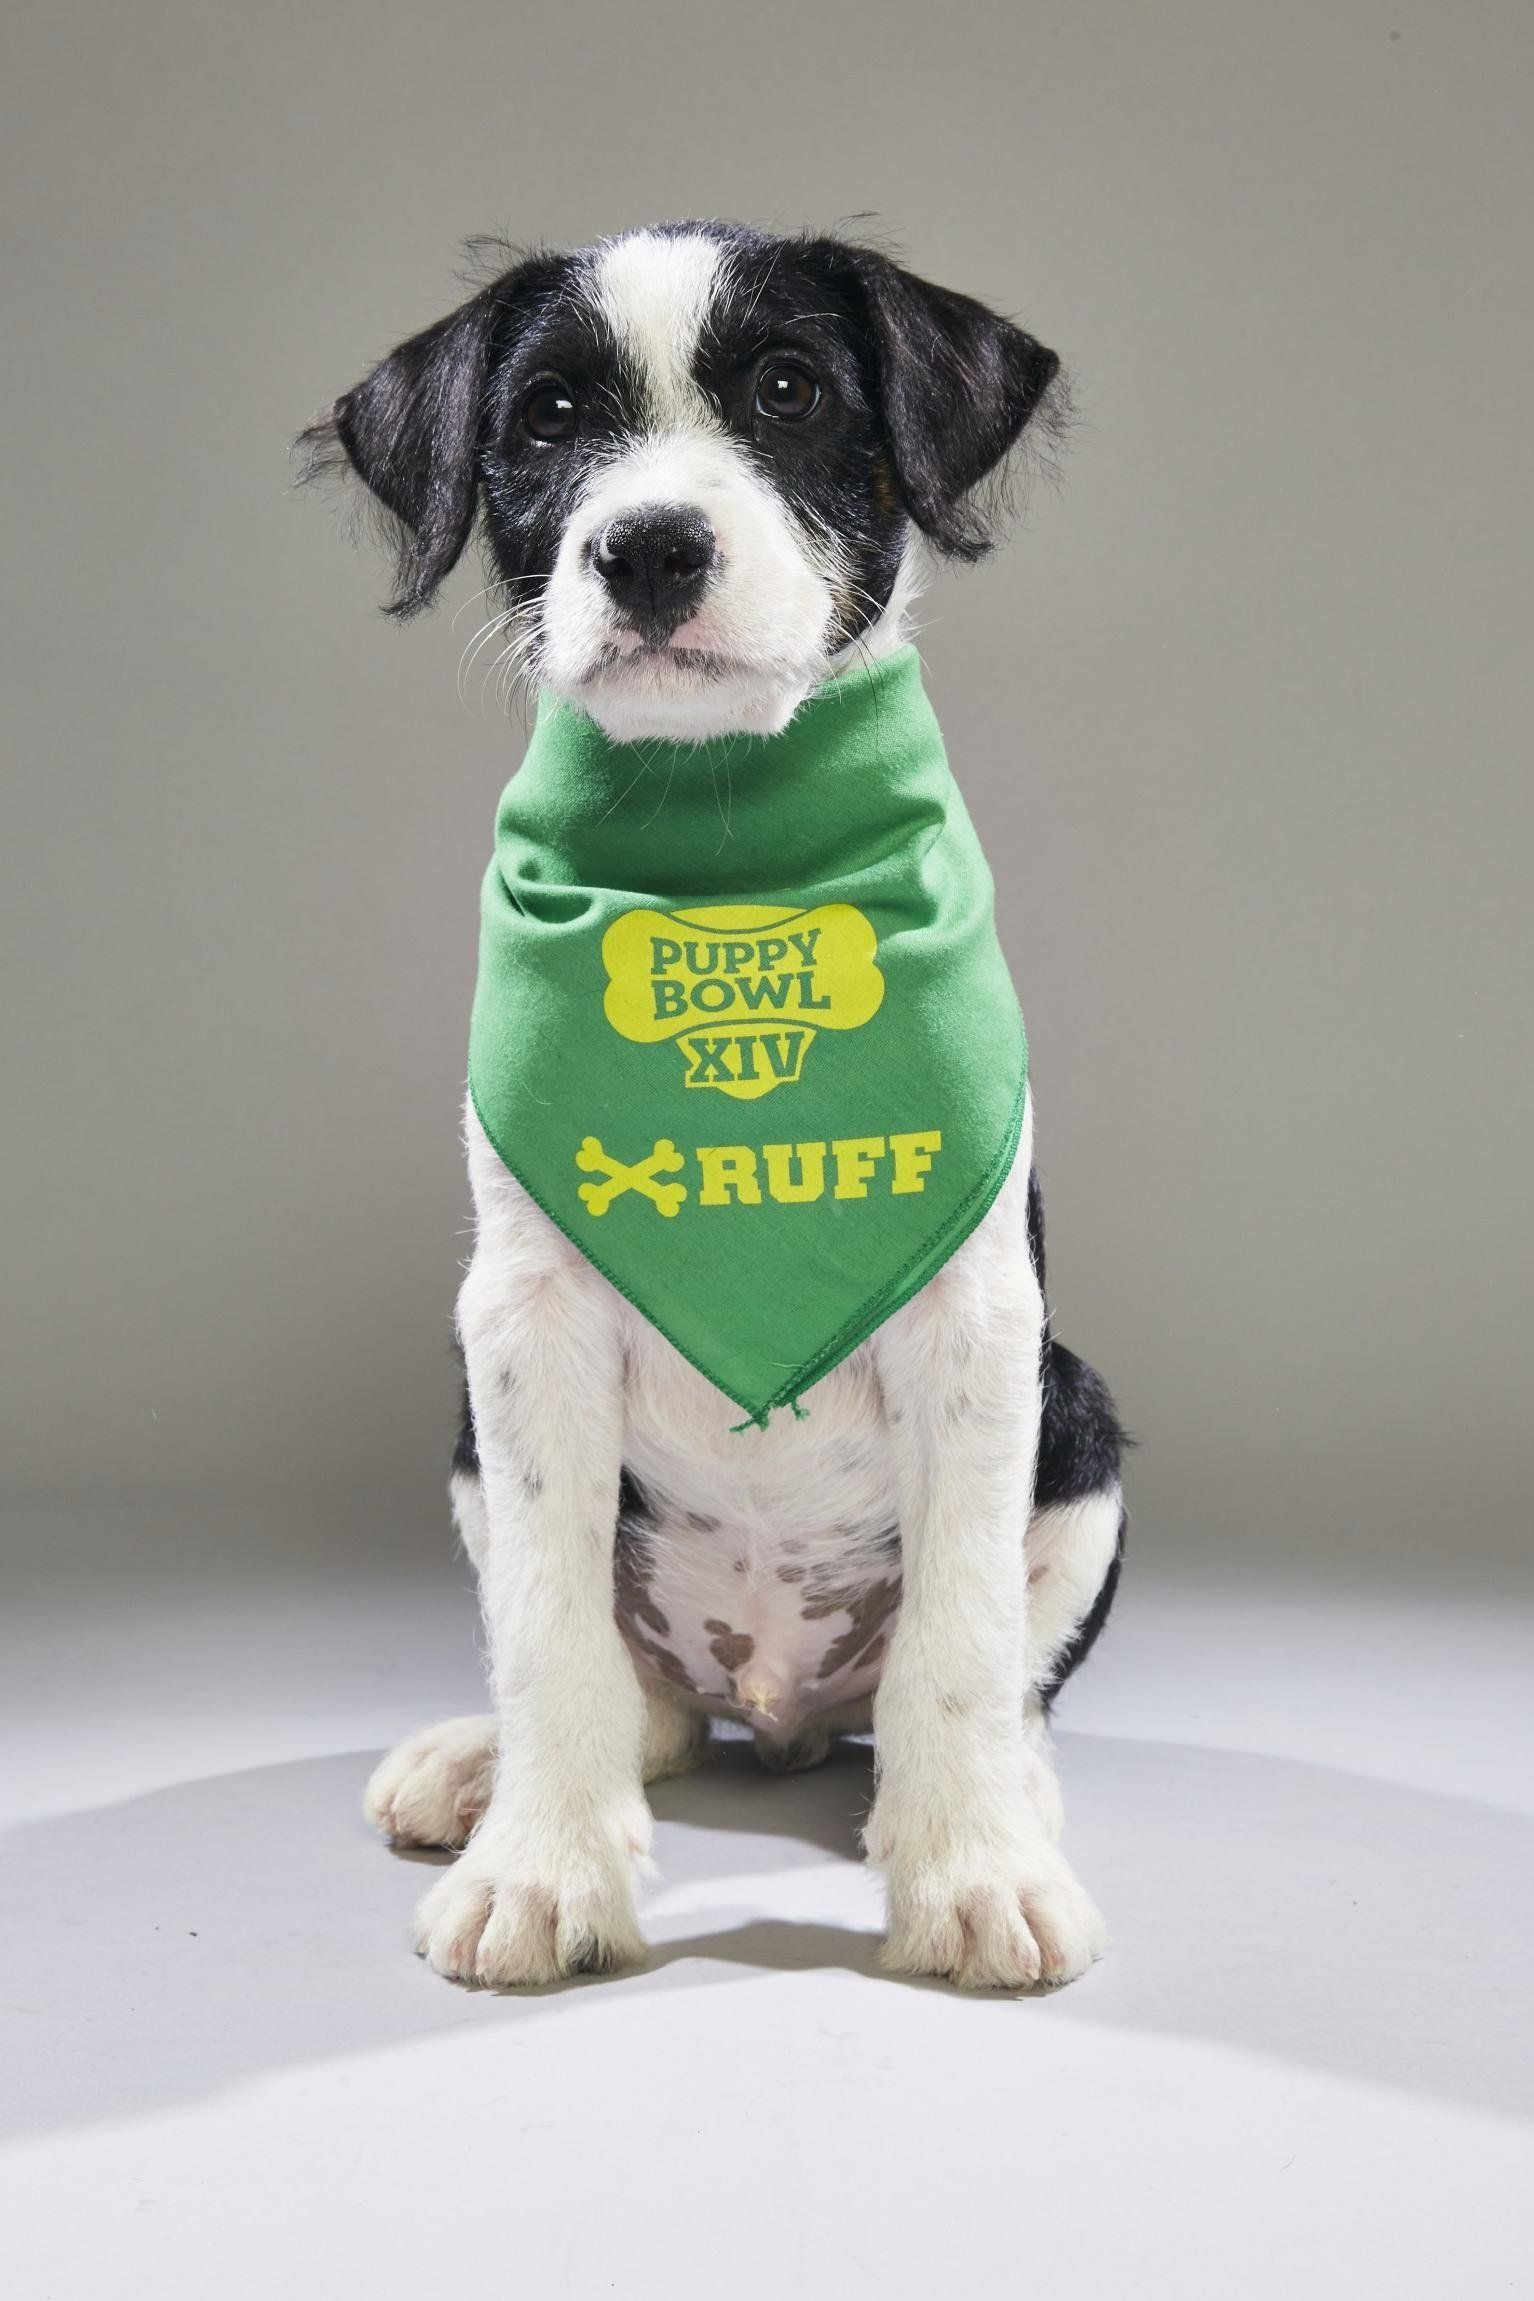 "Archer, now known as Maddox, is slated as a <a href=""http://www.animalplanet.com/tv-shows/puppy-bowl/photos/puppy-bowl-xiv-ba"